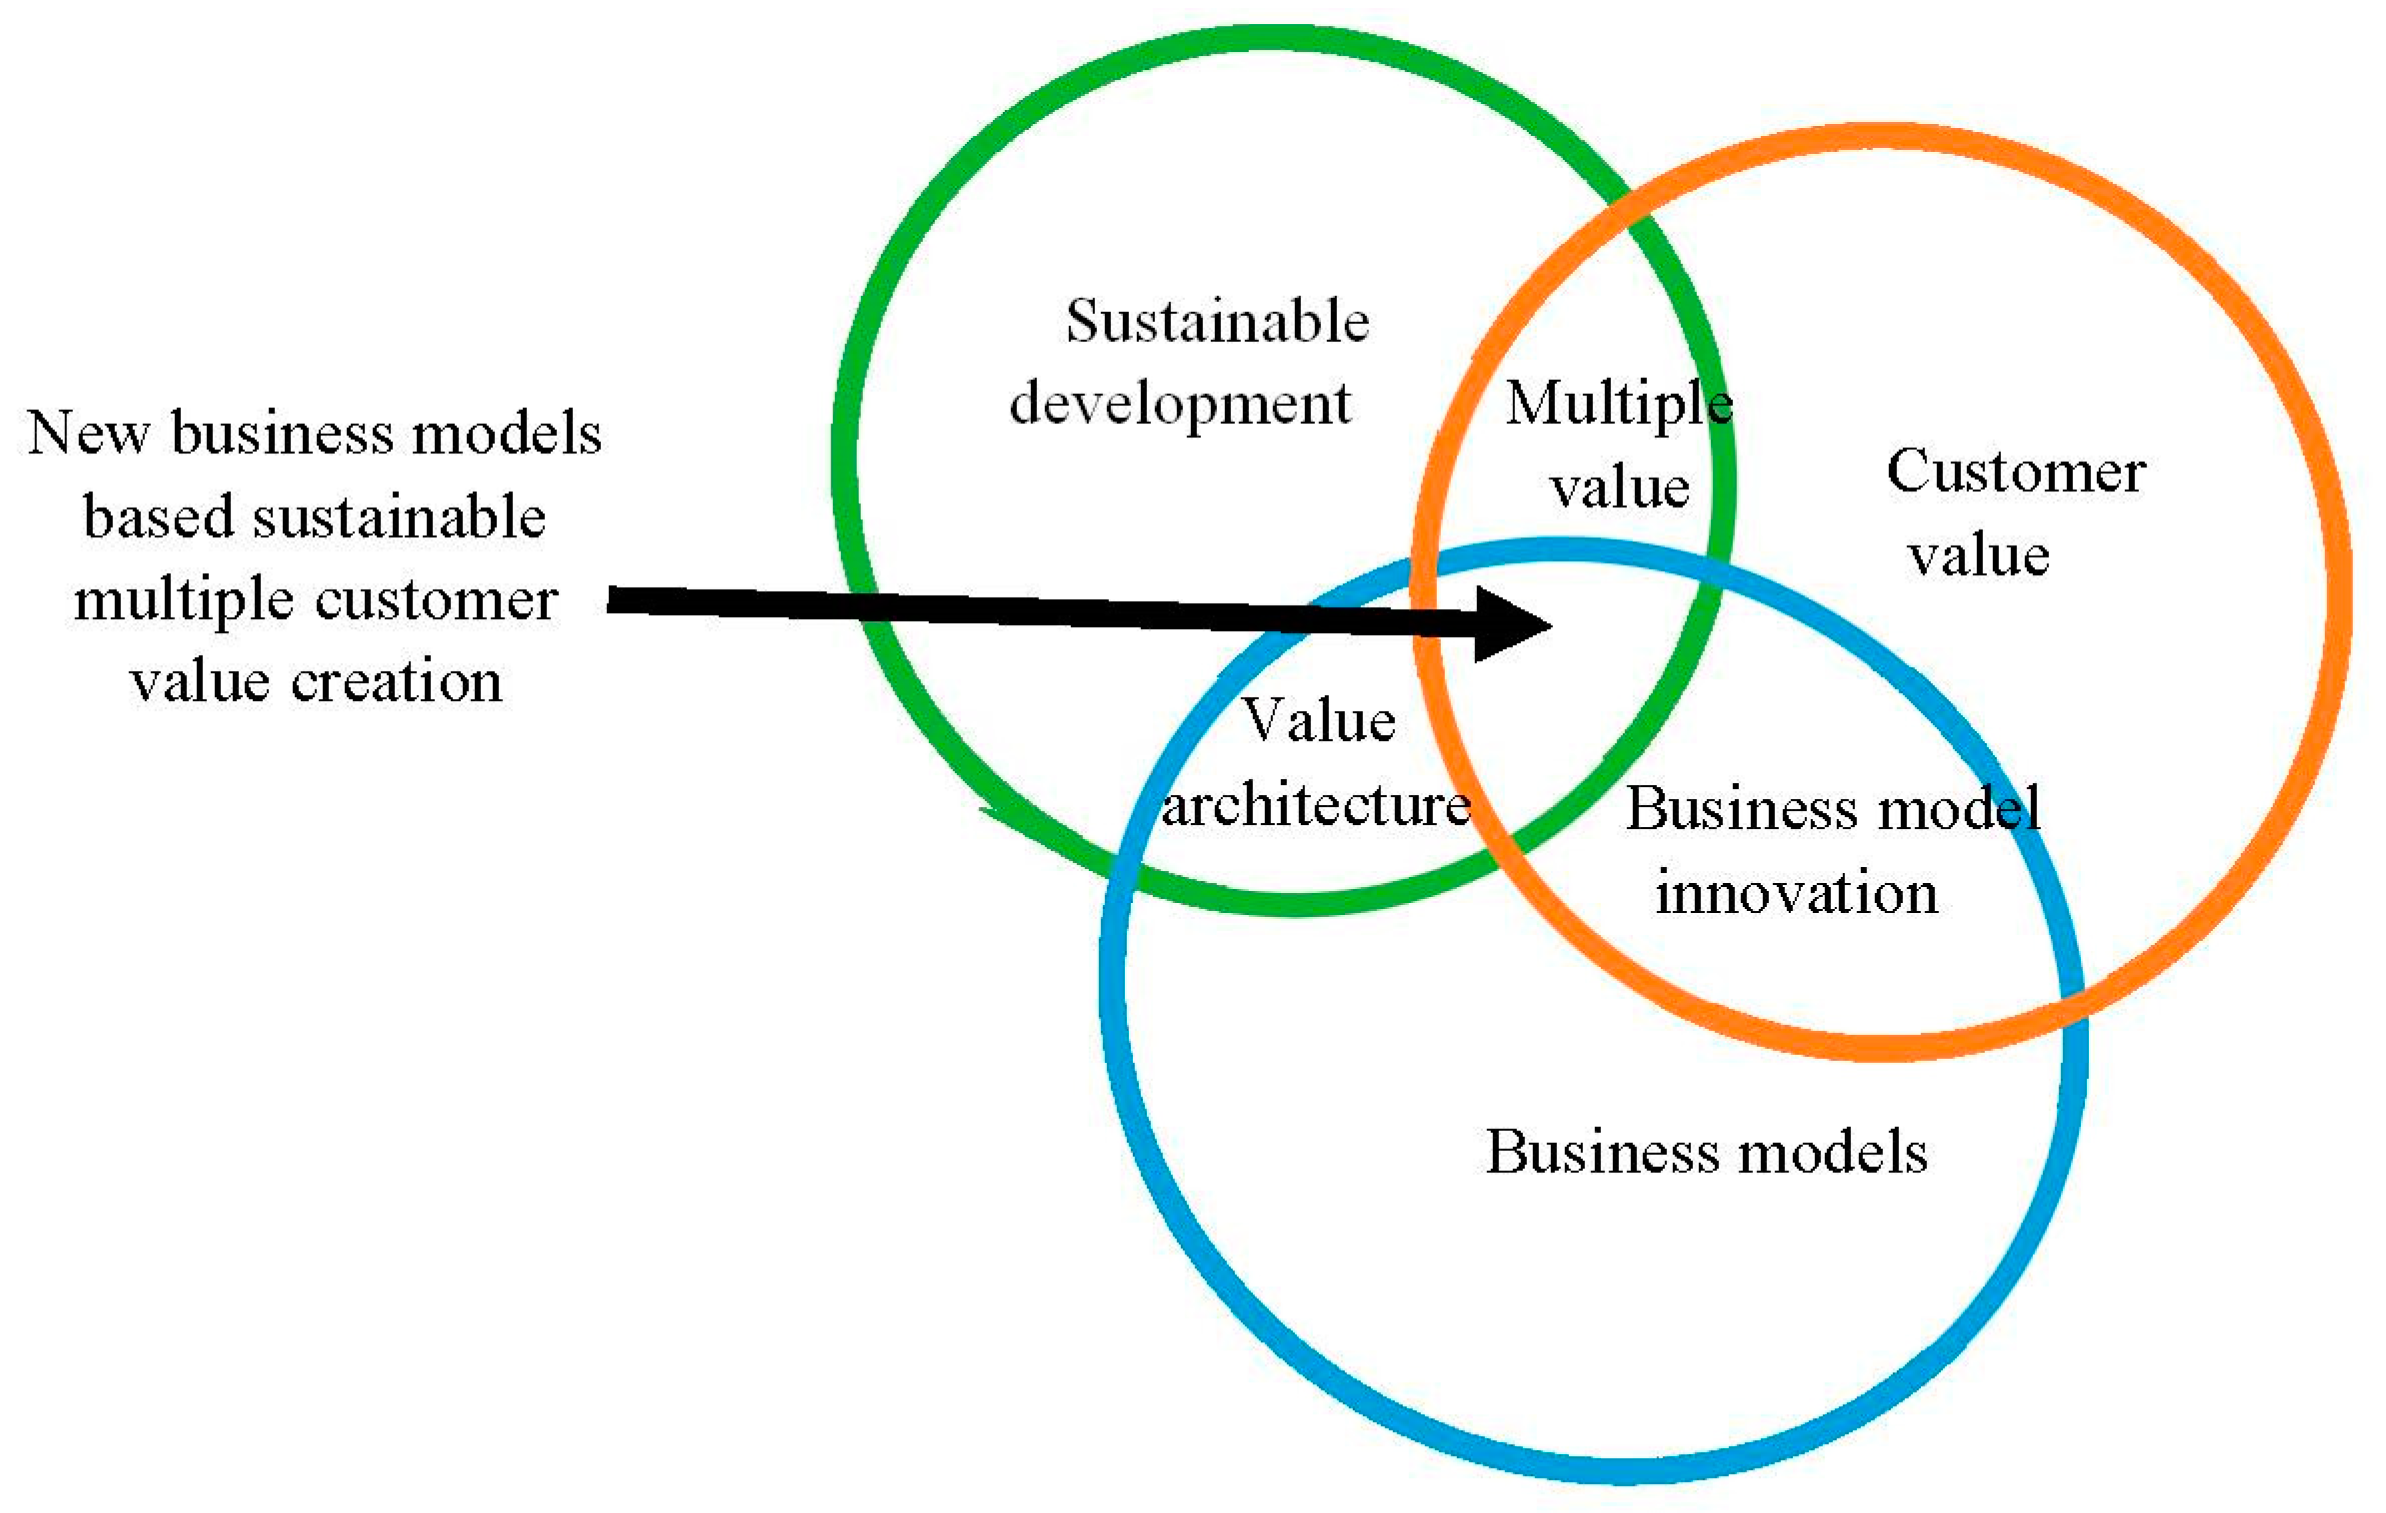 Sustainability Free Full Text New Business Models Based On Multiple Value Creation For The Customer A Case Study In The Chemical Industry